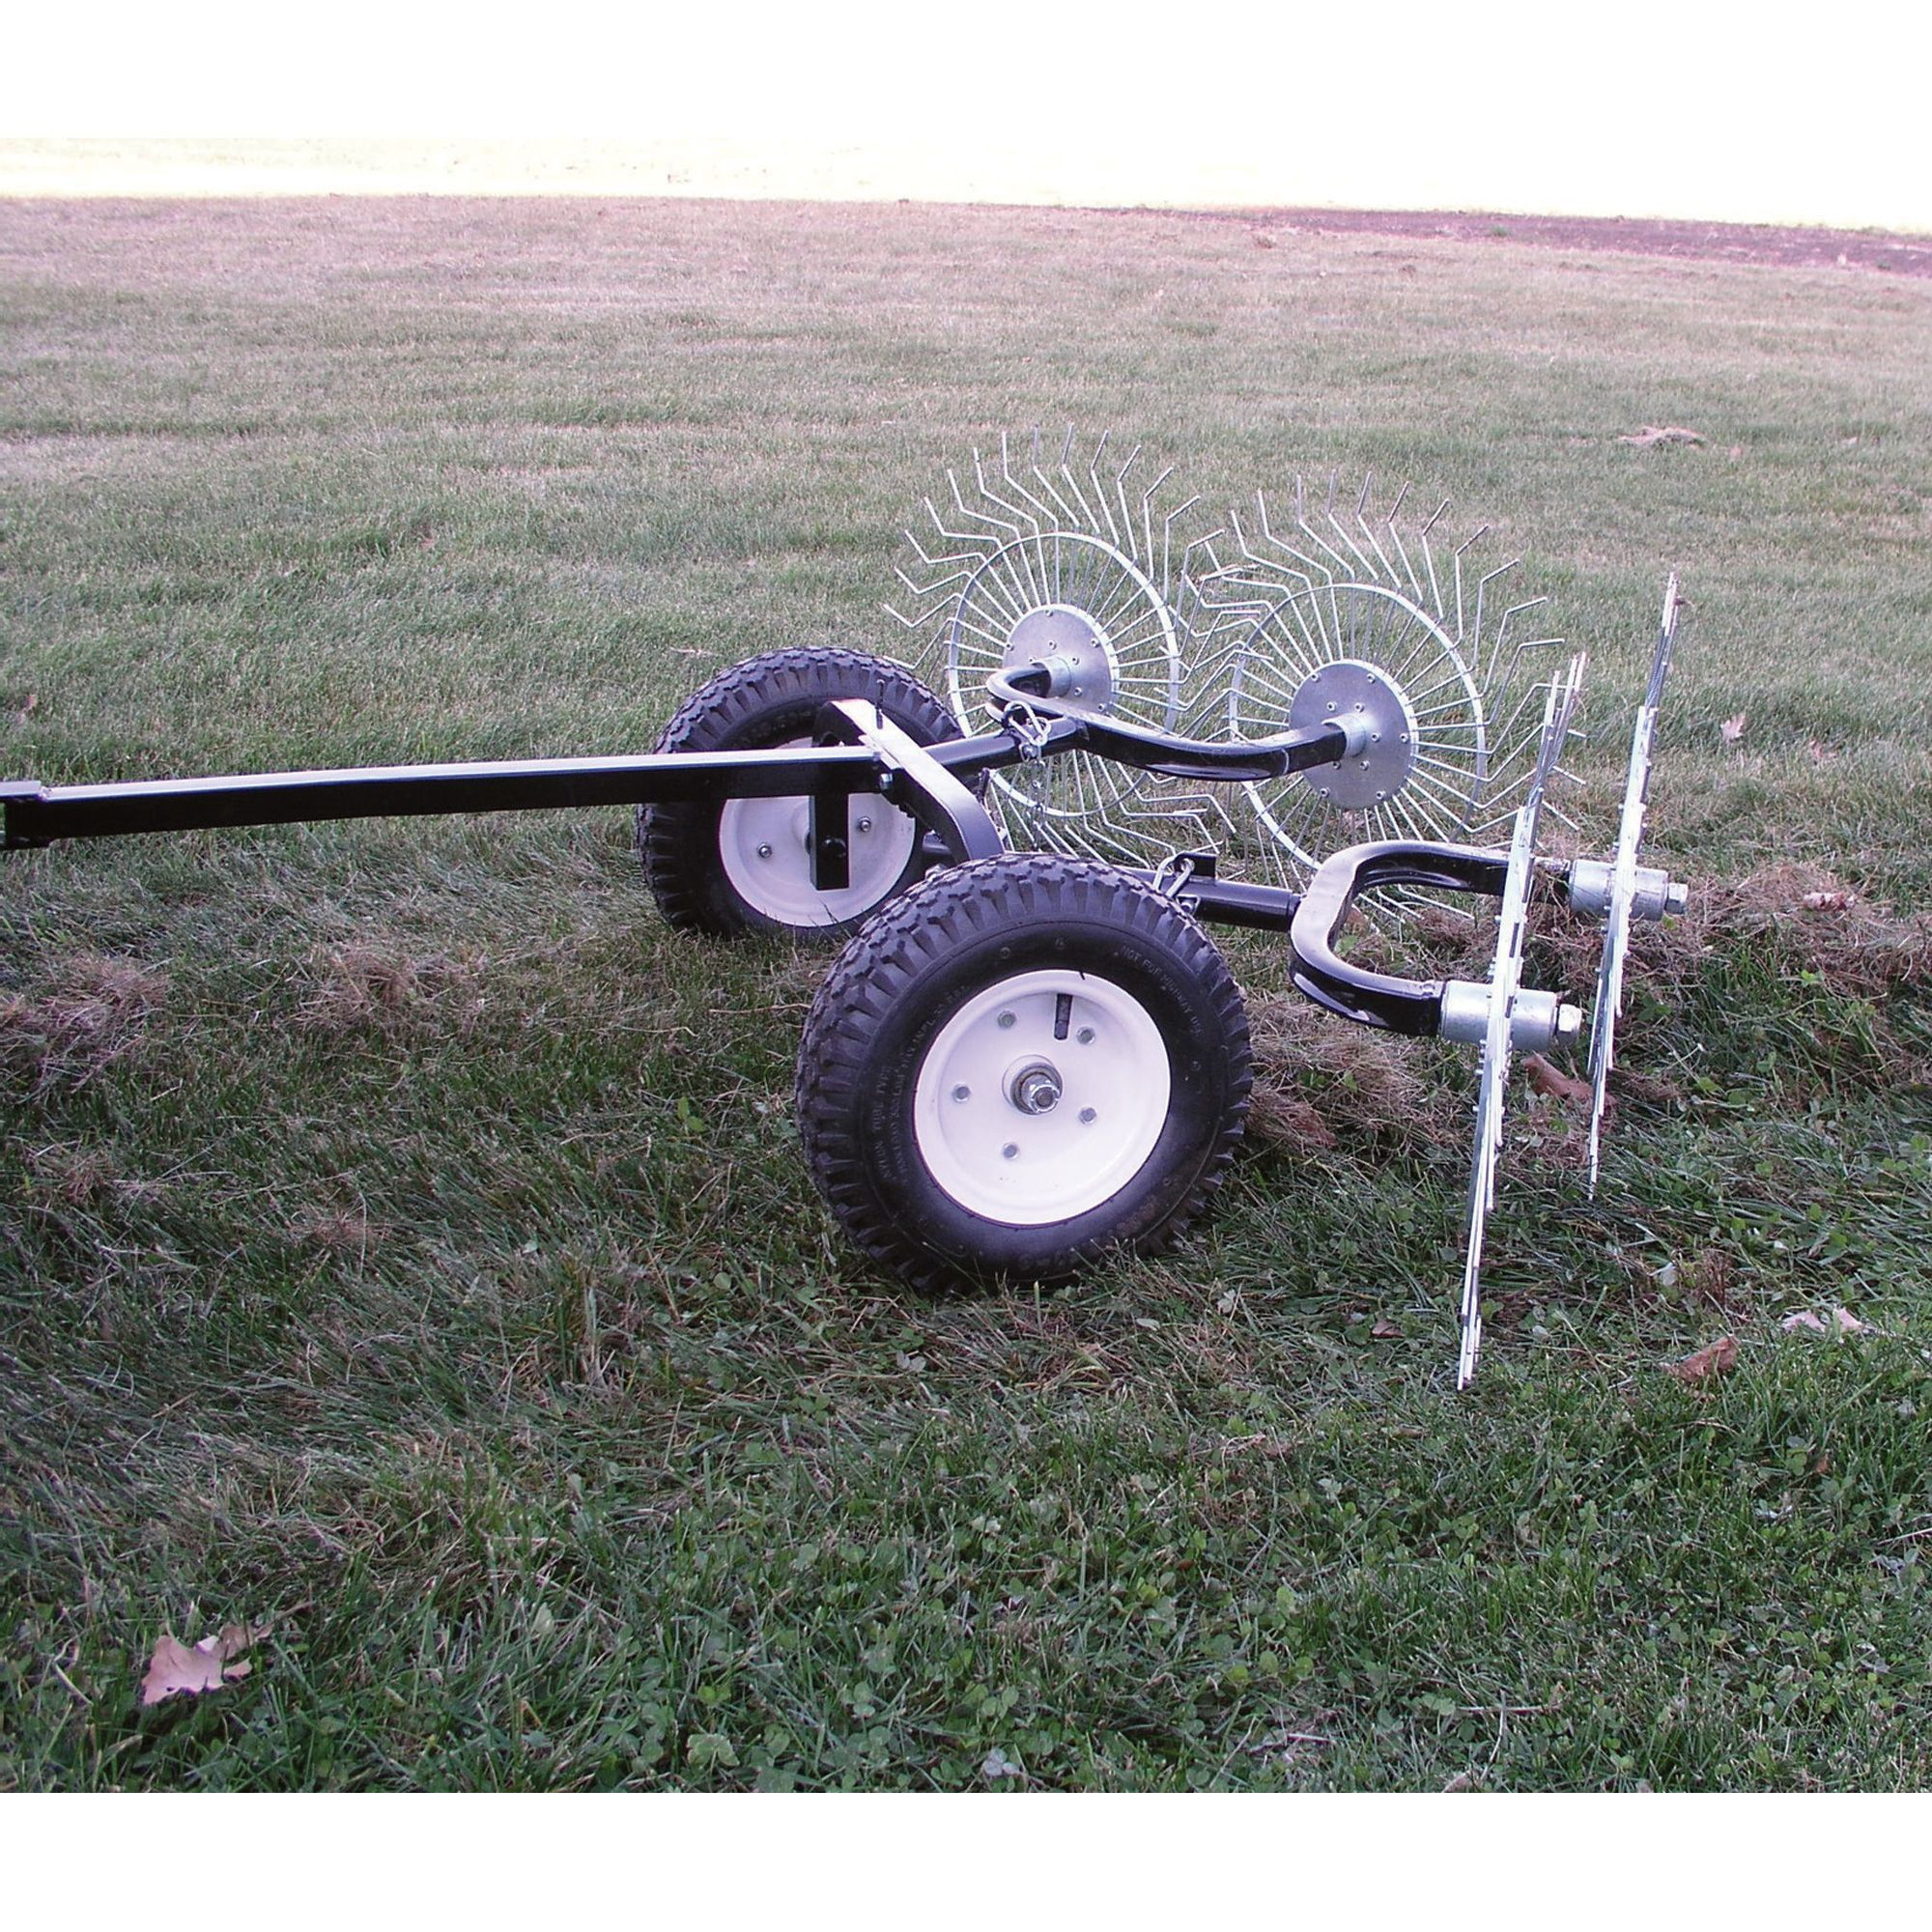 The Yard Tuff Pull Behind Dethatching Rake Turns Your Atv Or Lawn Tractor Into A Time Saving Labor Workhorse That Can Quickly Handle Large Areas